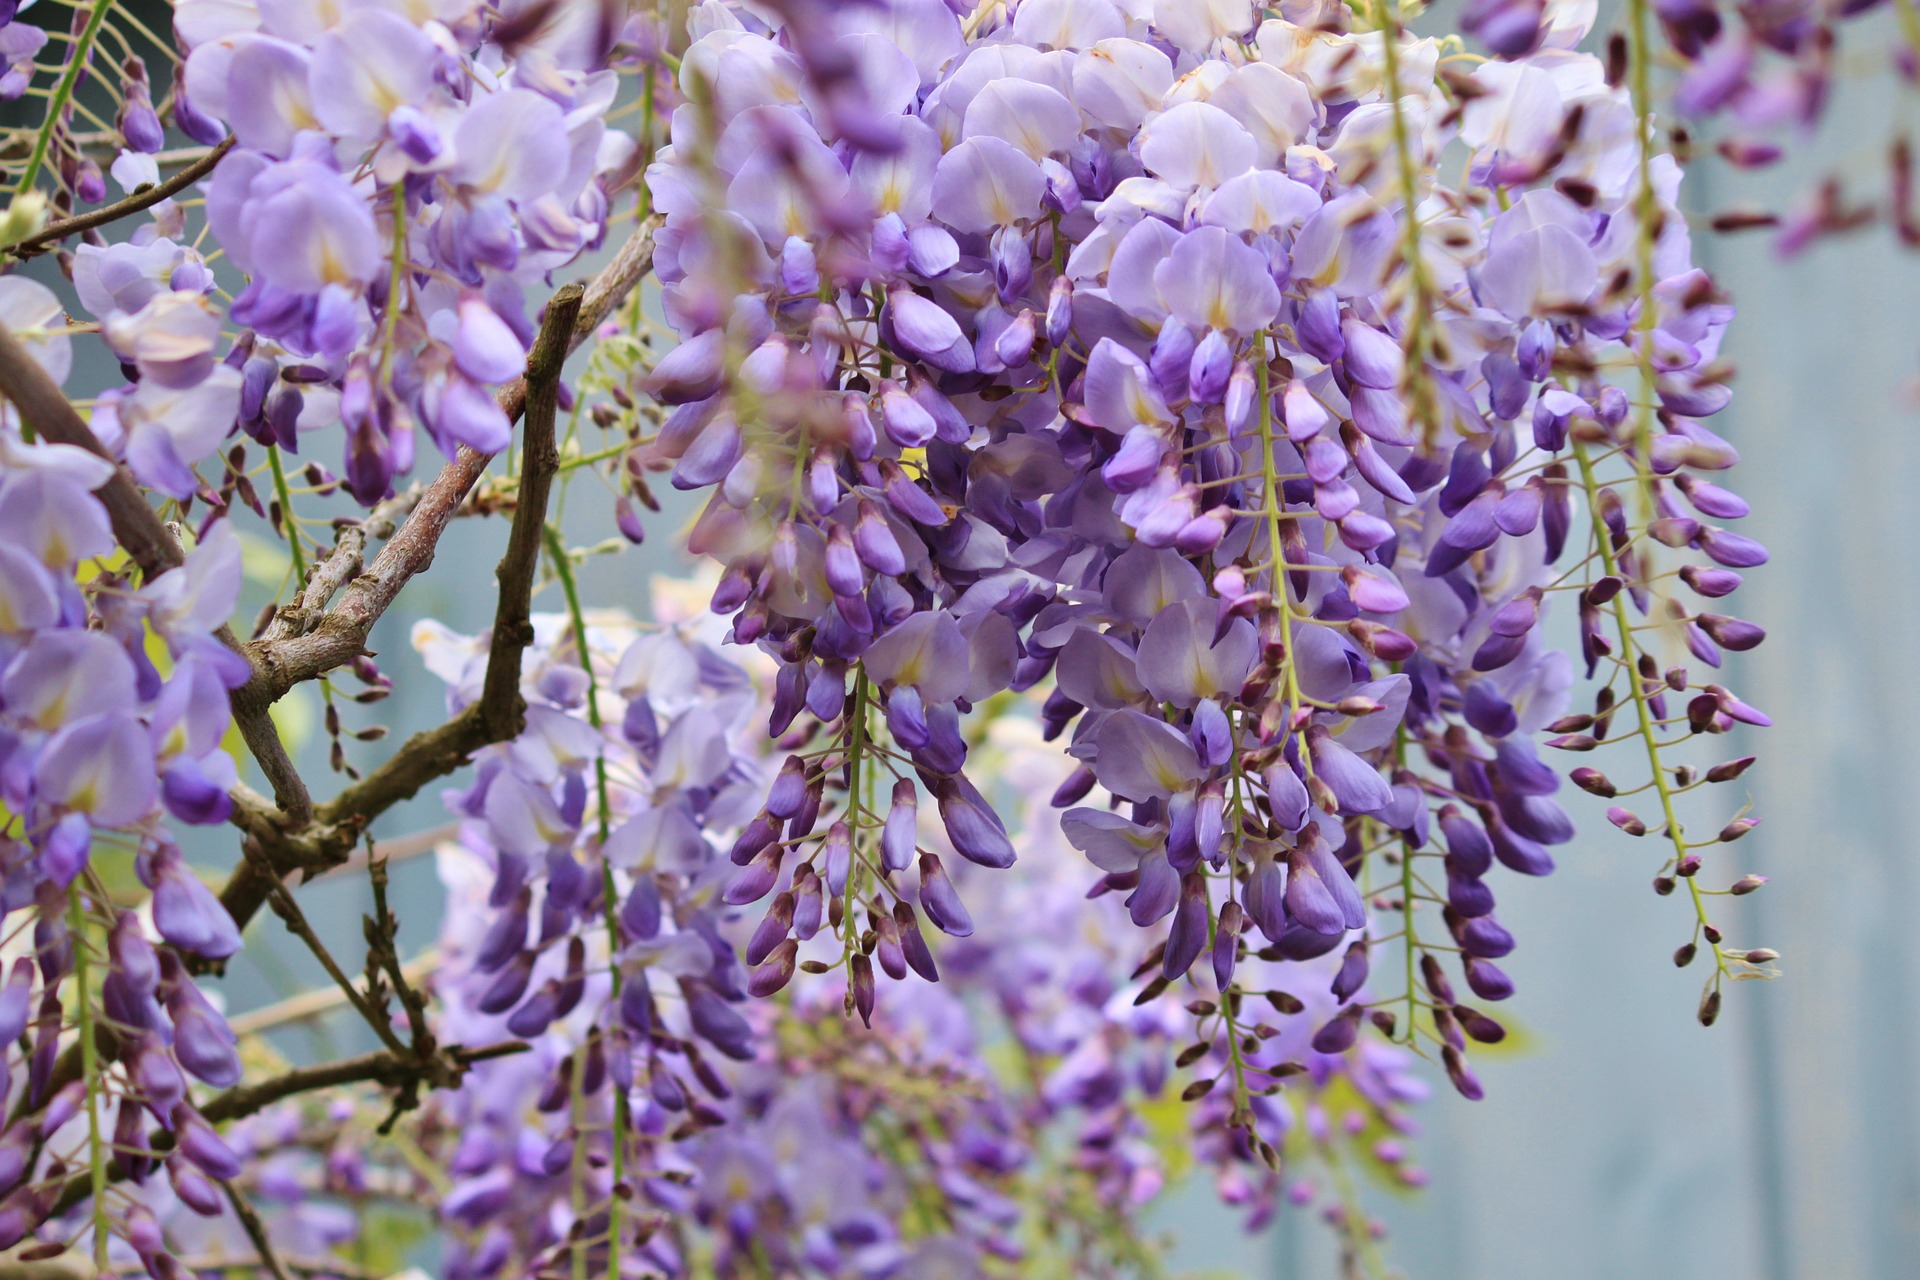 Wisteria How To Plant Grow And Care For Wisteria Plants